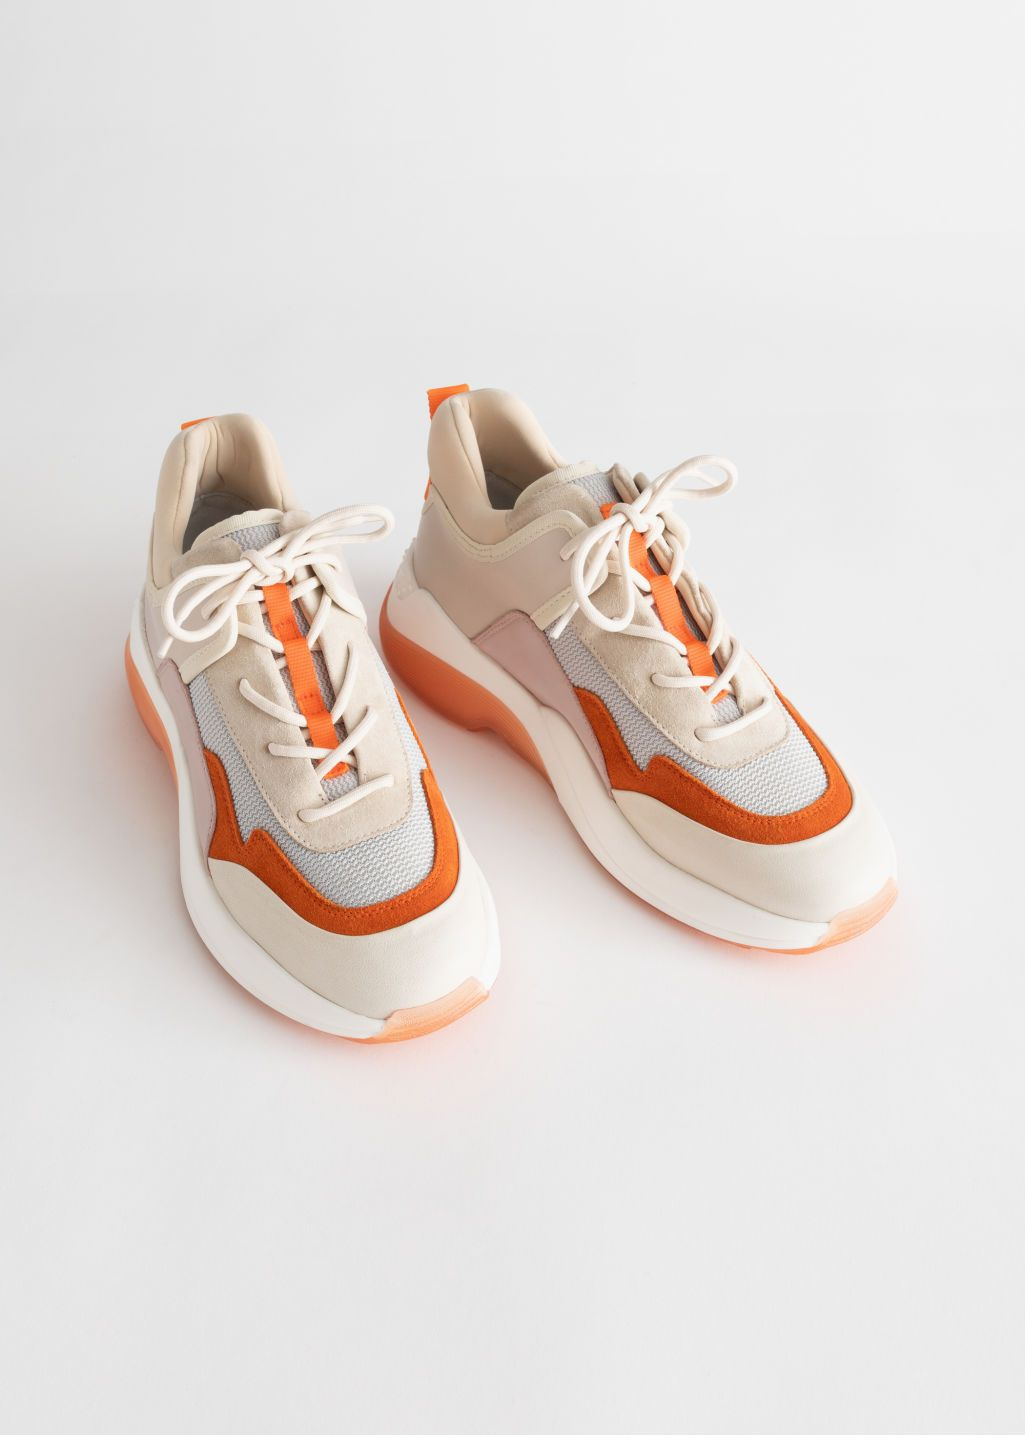 Trio Colour Block Chunky Sneakers | Chunky sneakers, Puma